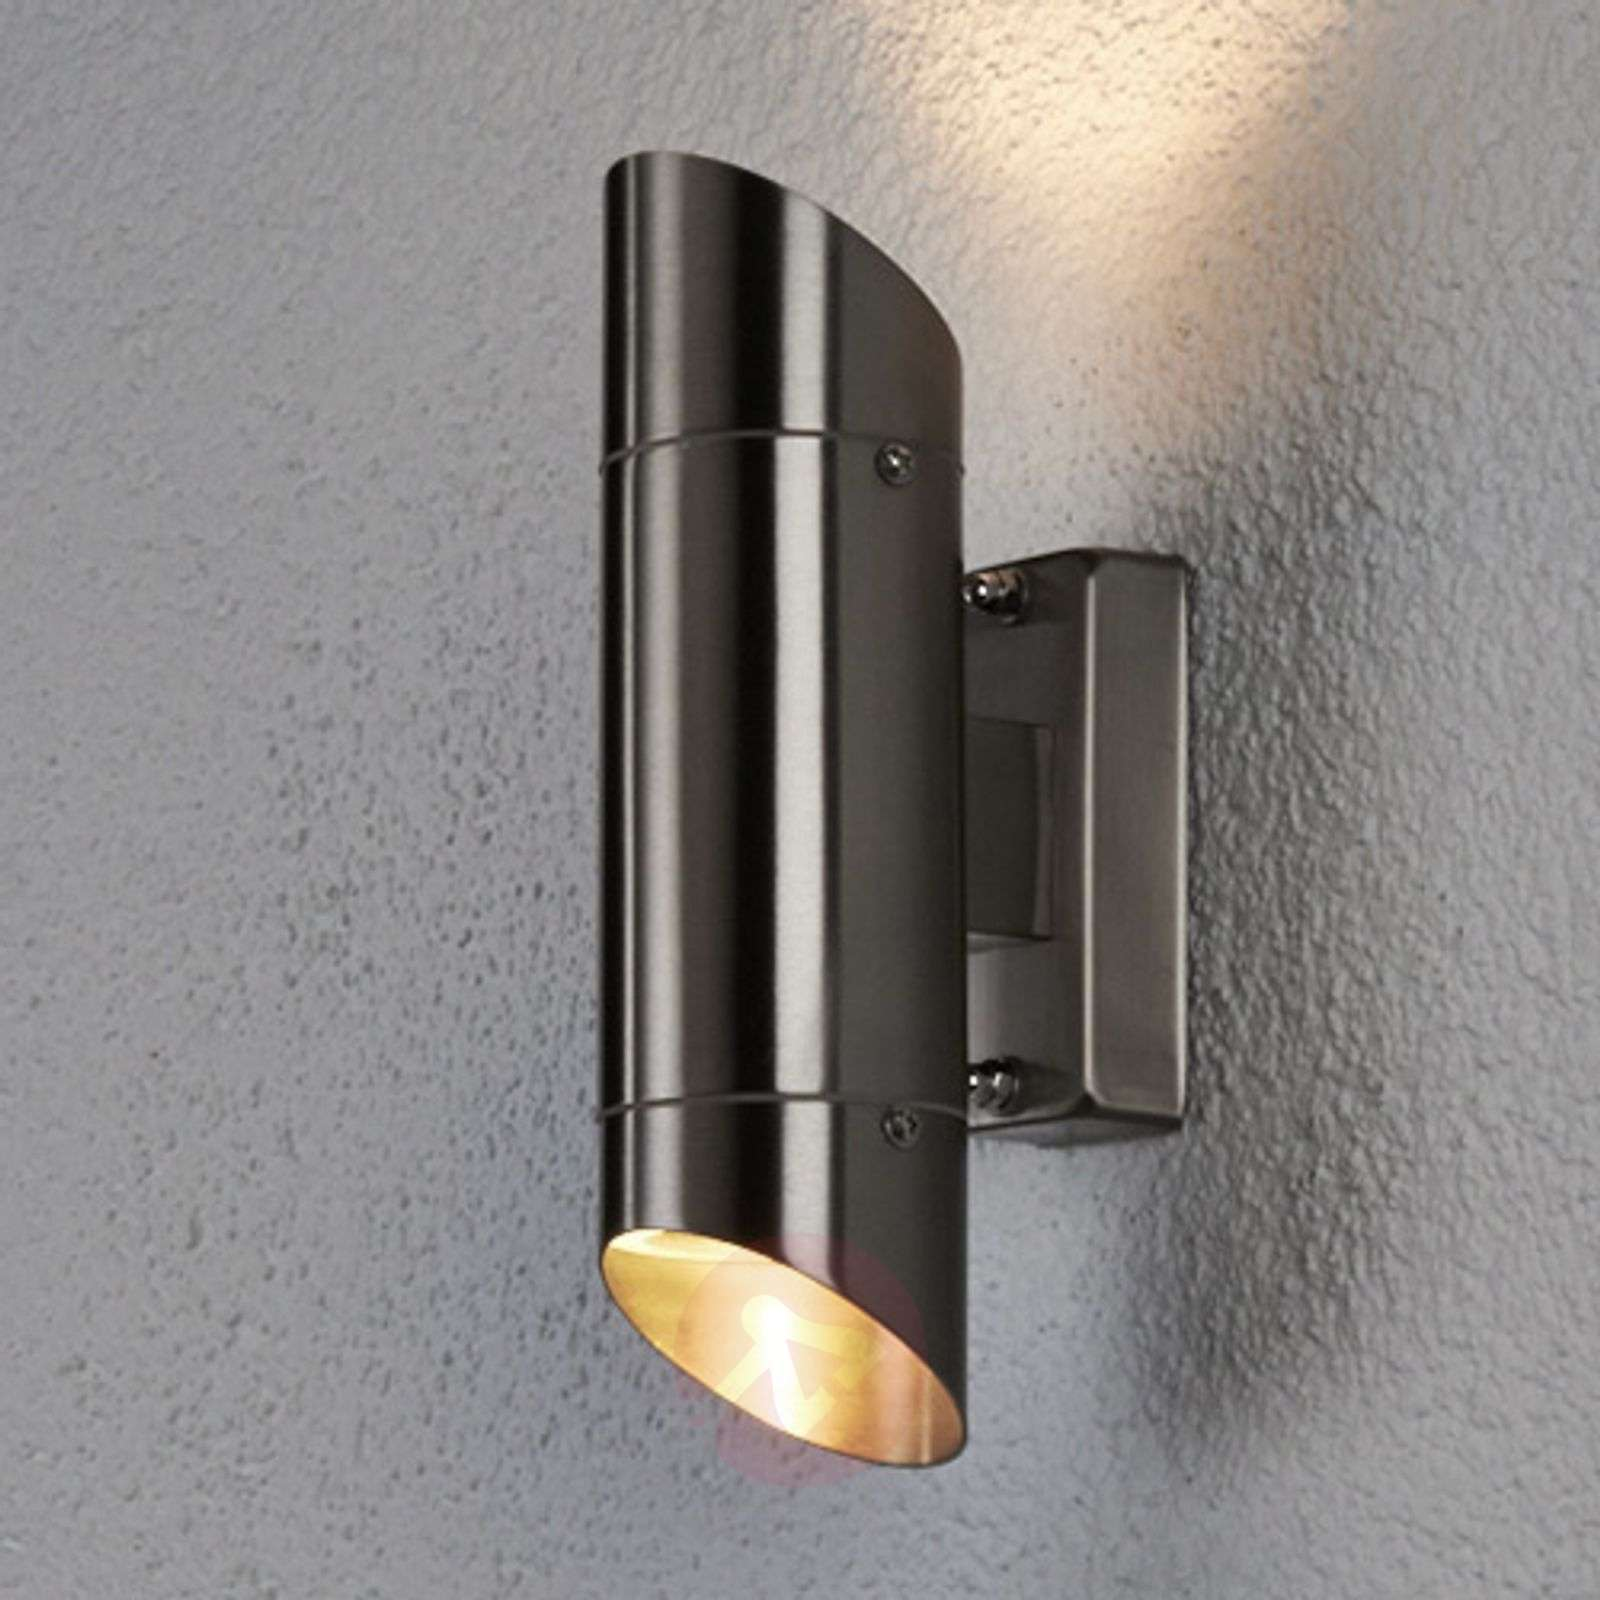 Cosia outside wall light stainless steel lights cosia outside wall light stainless steel 9630011 01 aloadofball Choice Image